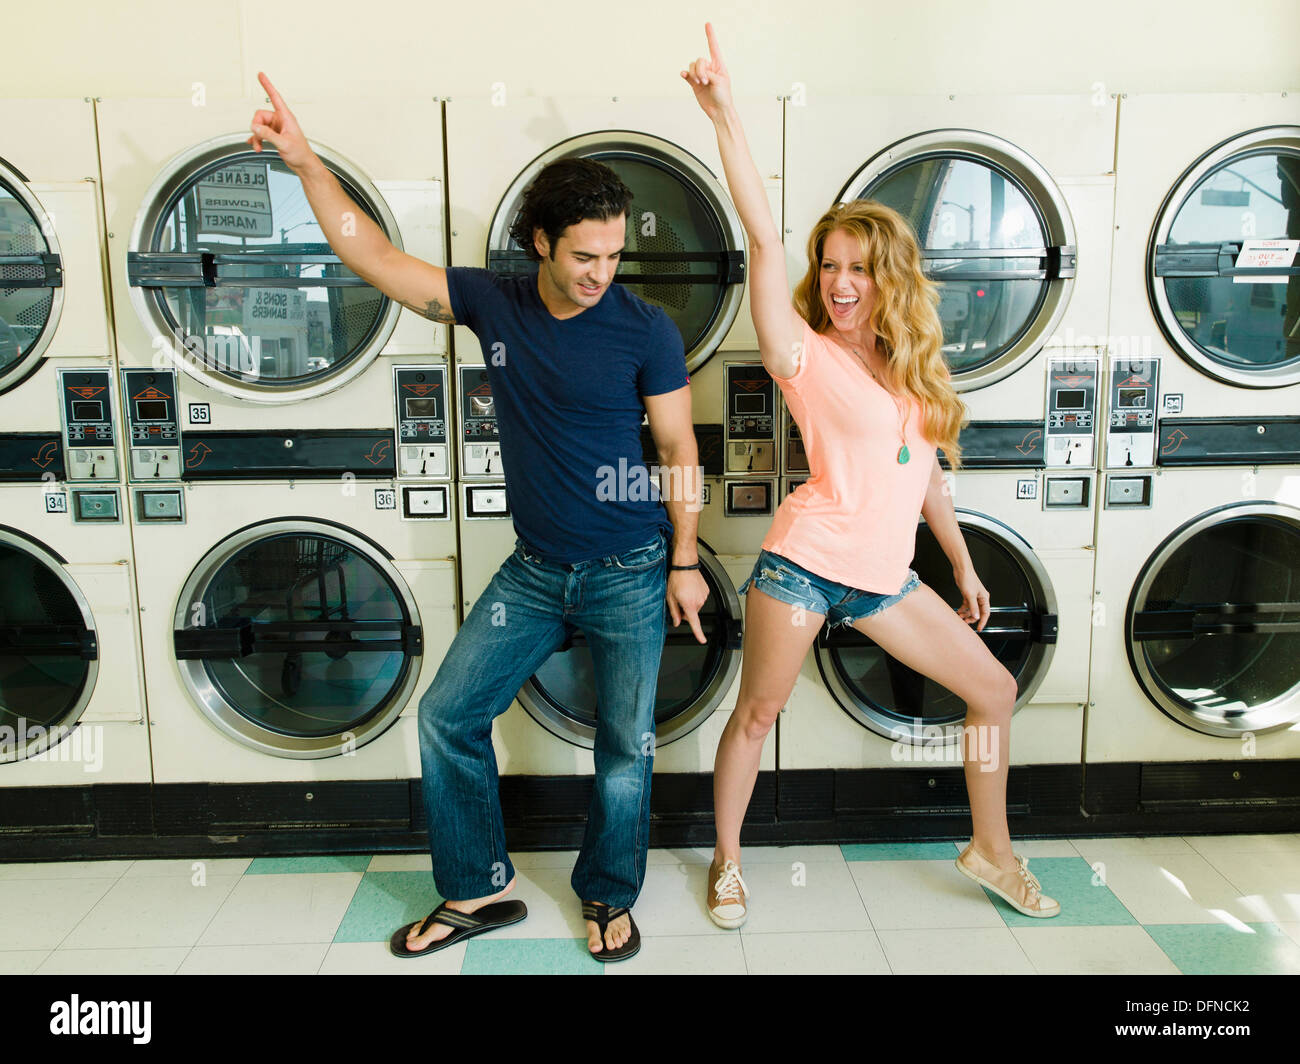 A beautiful lady dances with a smart young man in San Diego coin laundromat. - Stock Image